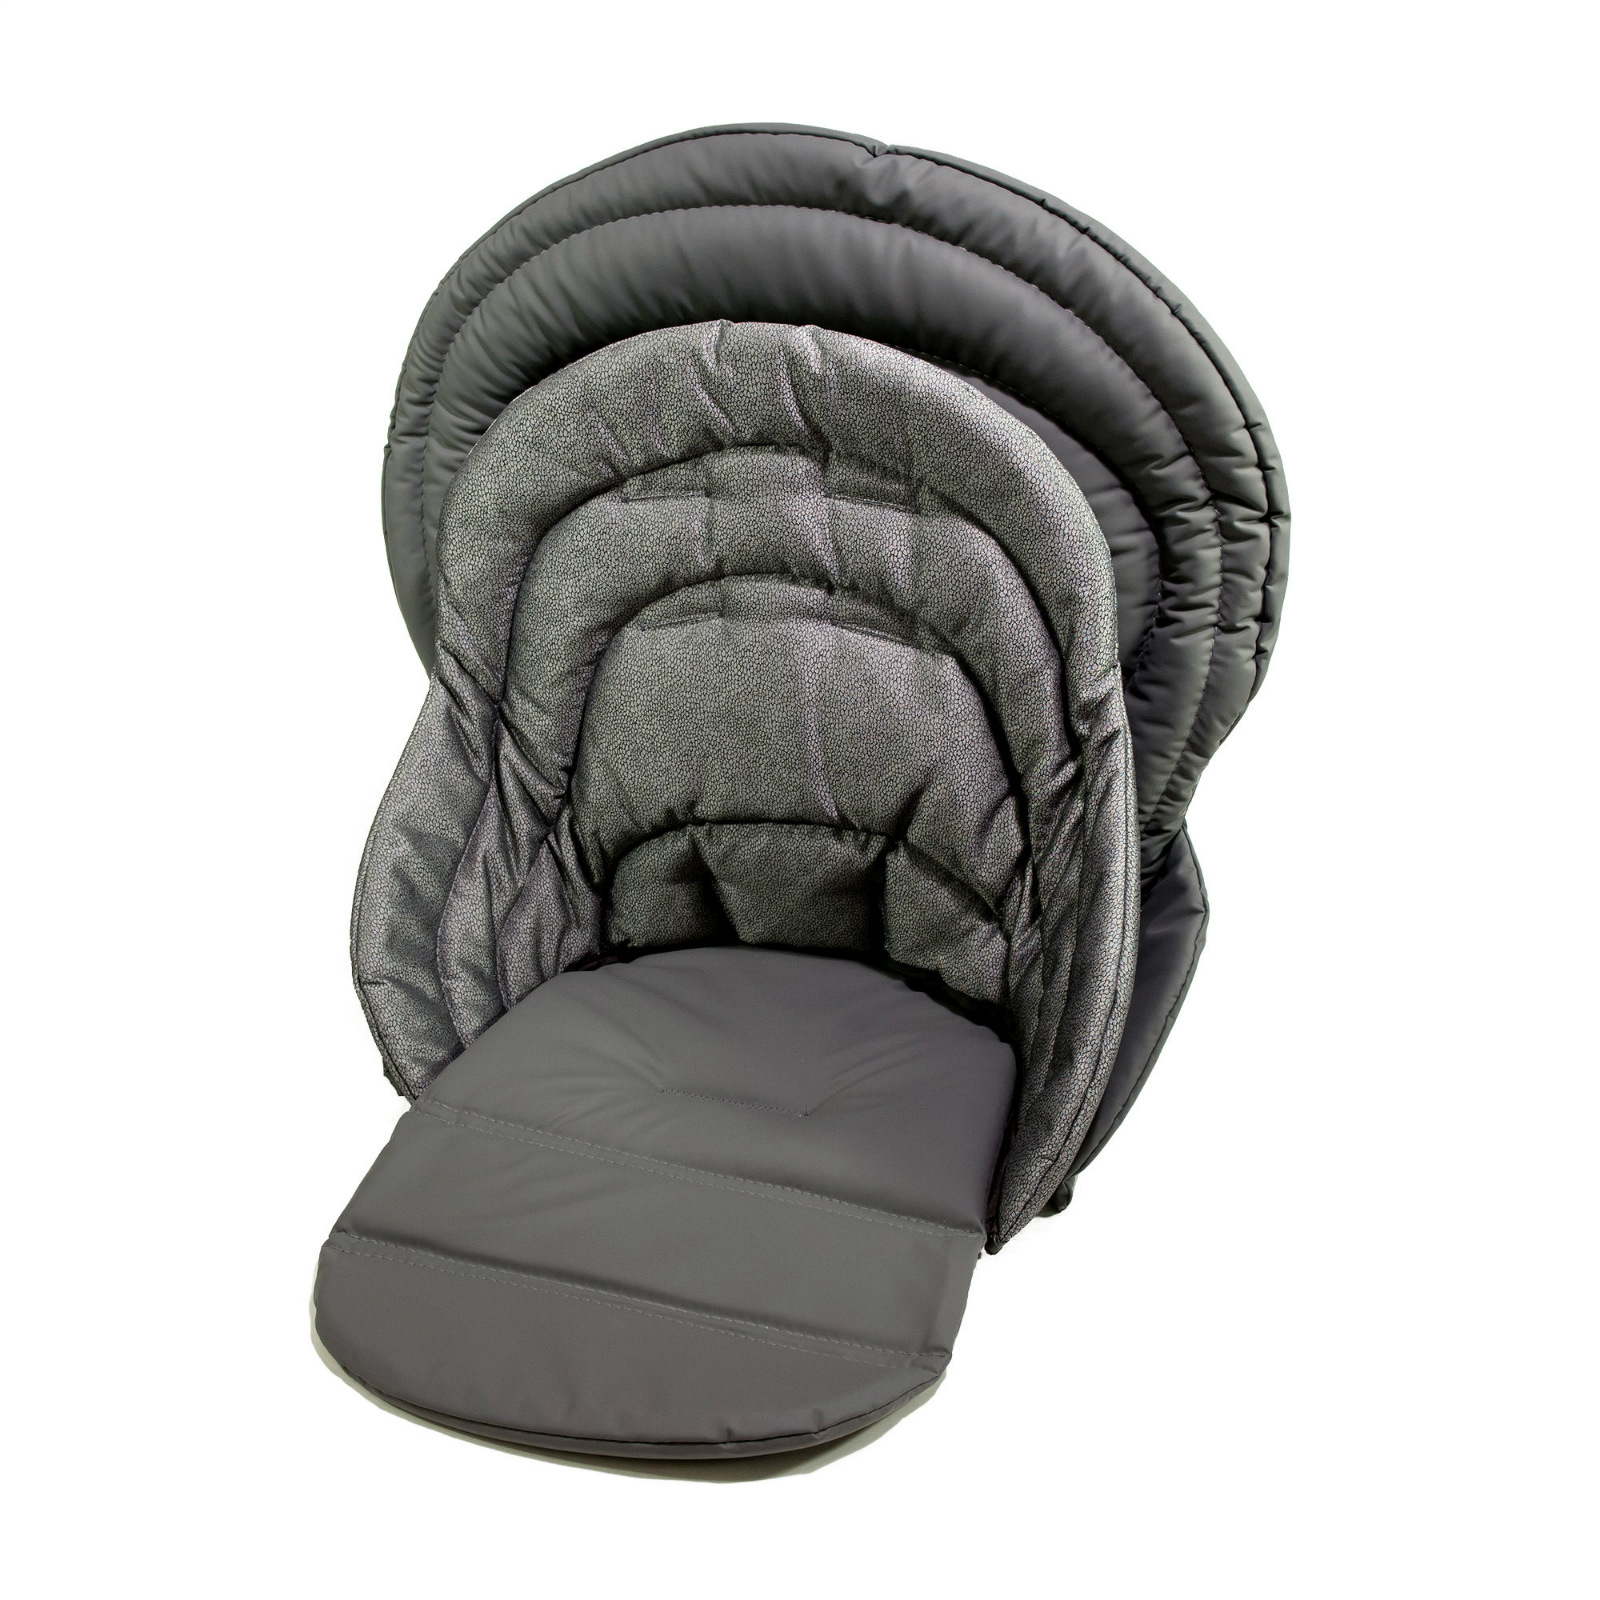 Chicco Polly Highchair Replacement Seat Cover Velcromag